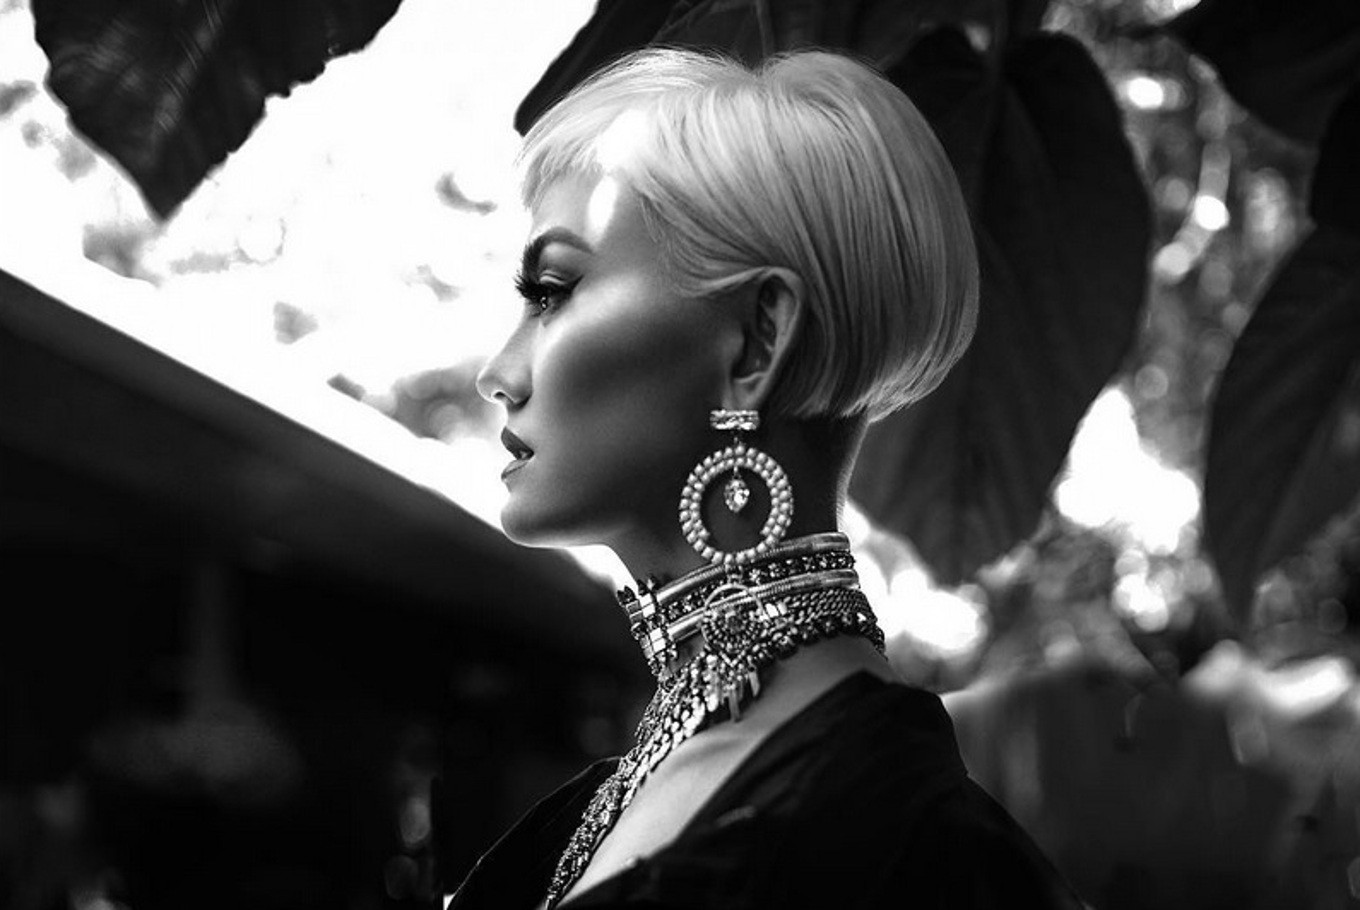 Agnez Mo releases first international album